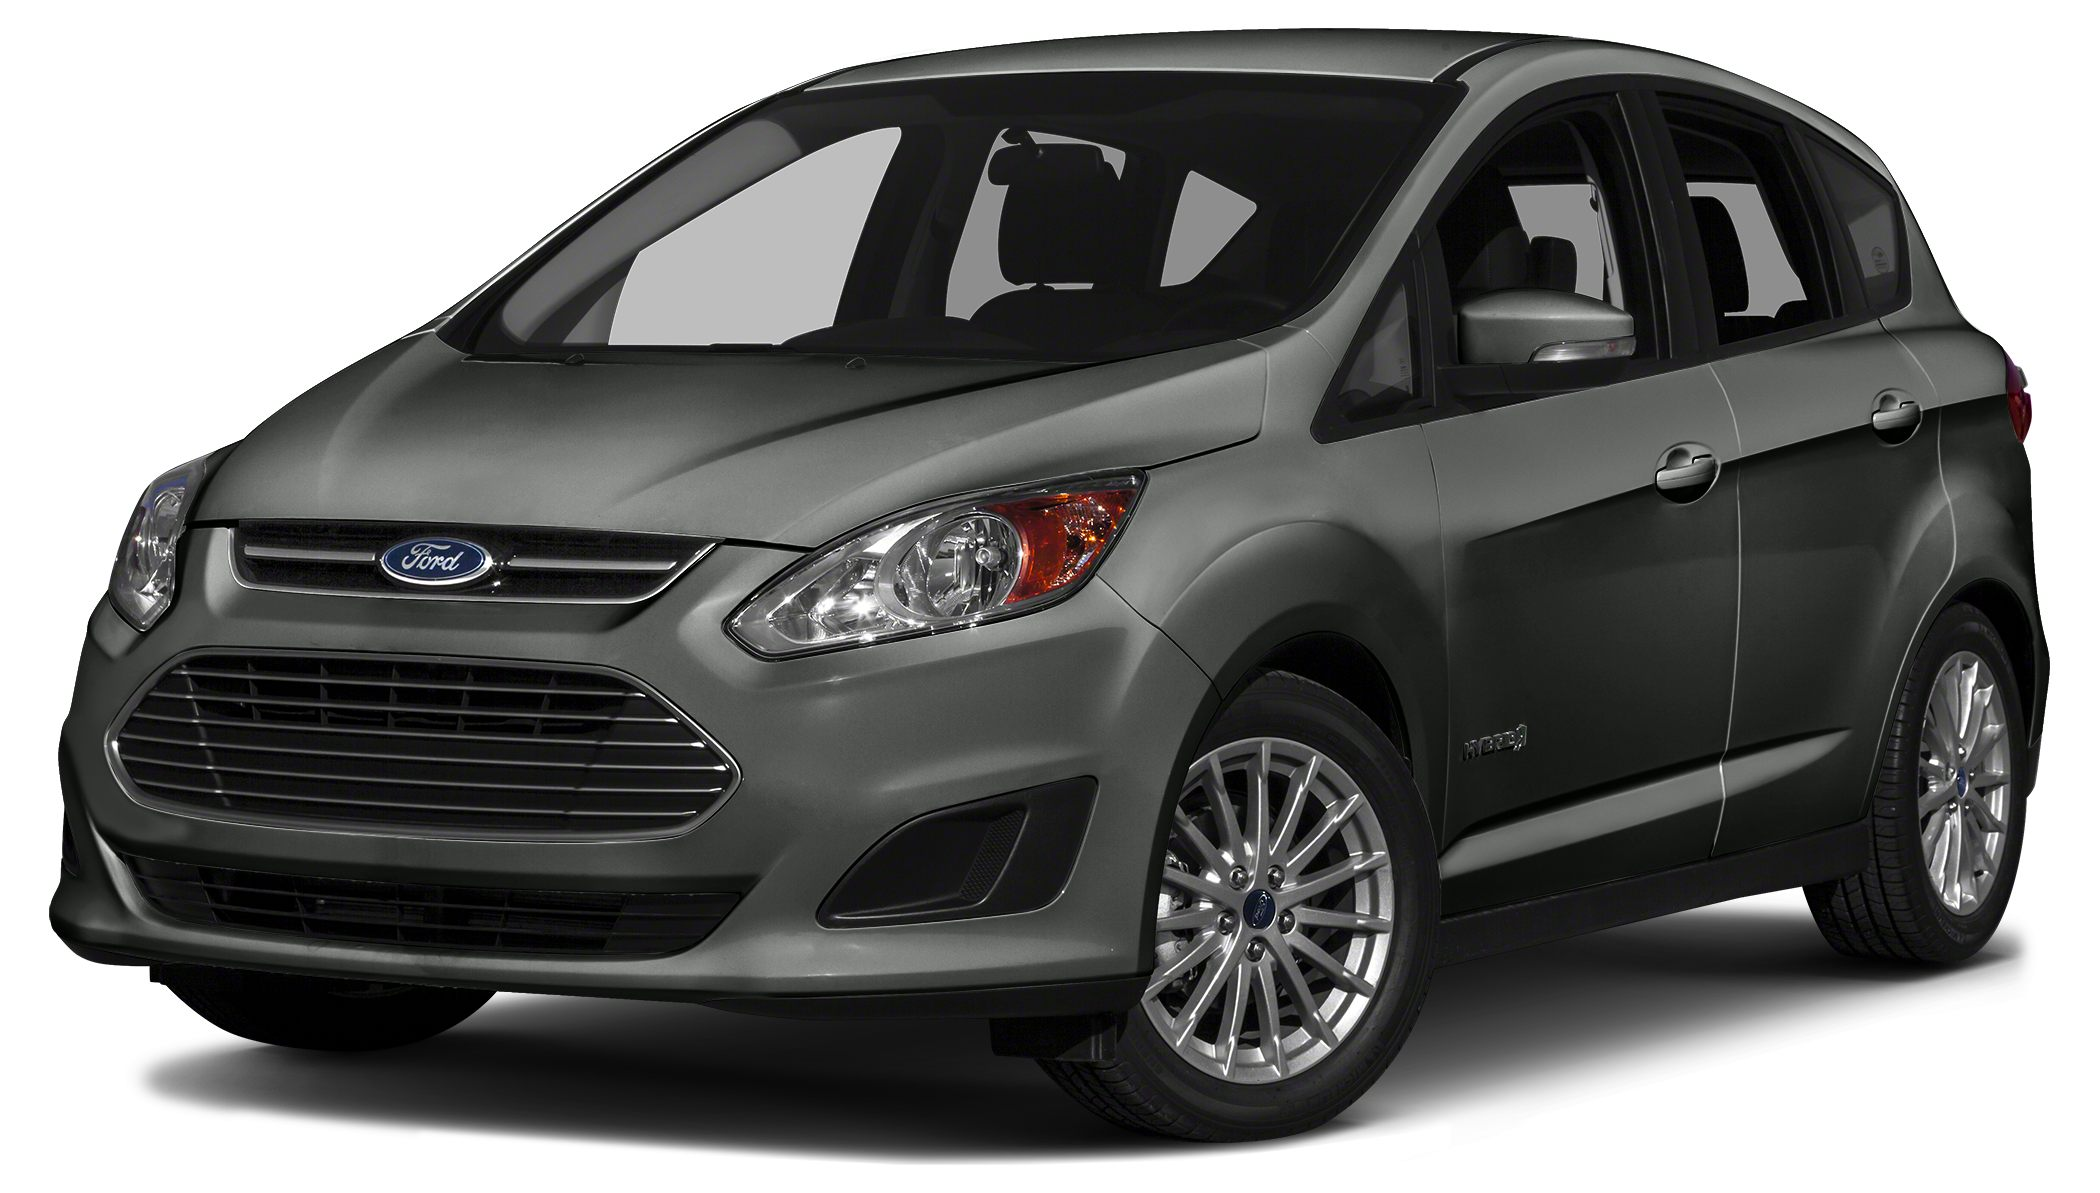 2016 Ford C-Max Hybrid SEL HYBRID LEATHER BLUETOOTH HEATED FRONT SEATS MP3 Player KEYLESS ENT